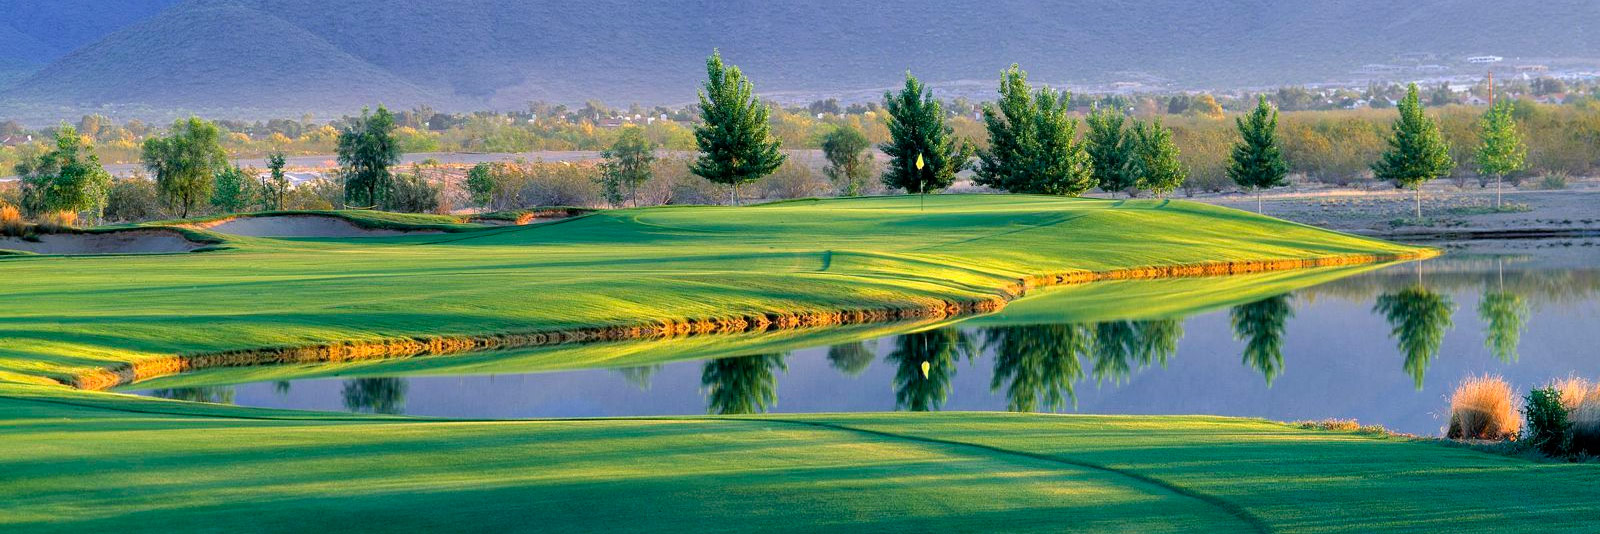 Phoenix/Scottsdale Golf Package: Villas at TPC Scottsdale + SunRidge / Eagle Mountain / Talking Stick / Raven for $189 per person, per day!